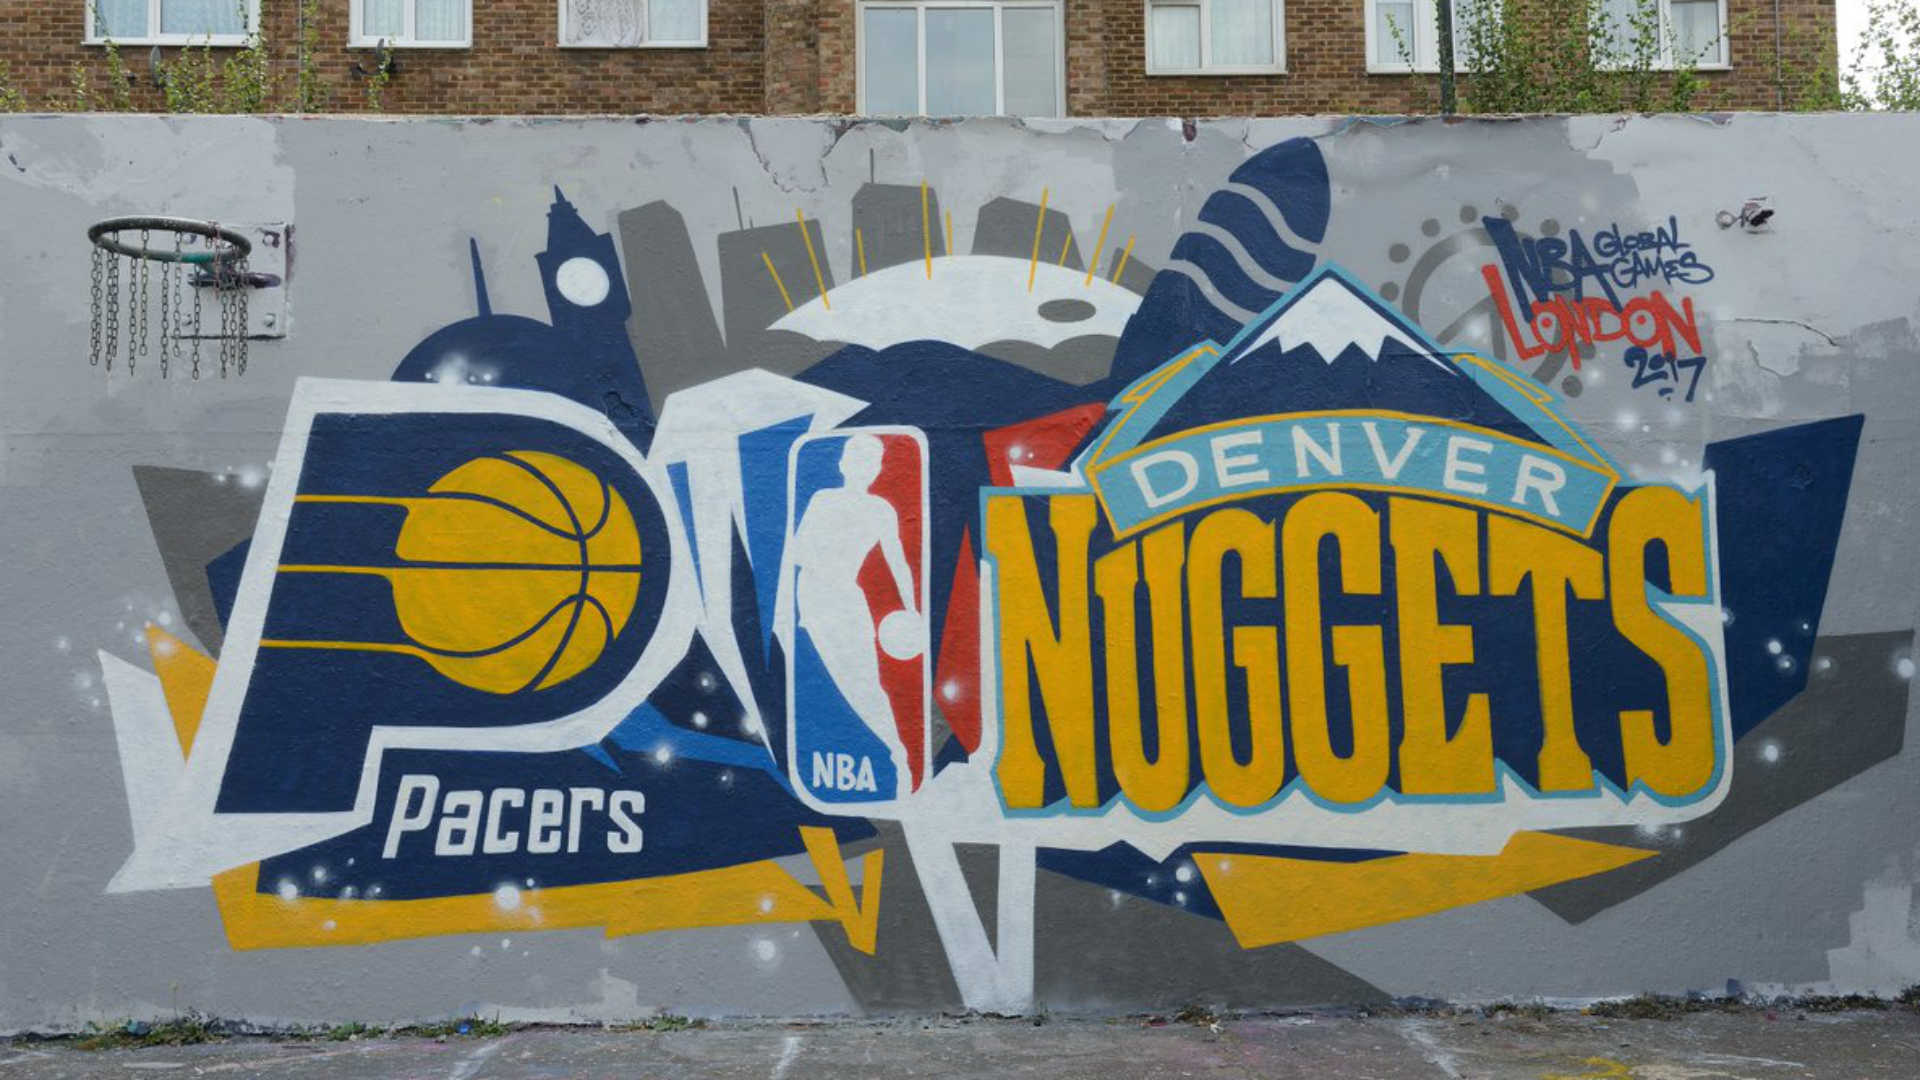 Nuggets-vs-pacers-in-london_1fl4cfcqem5zz1im60i2wxa1qq